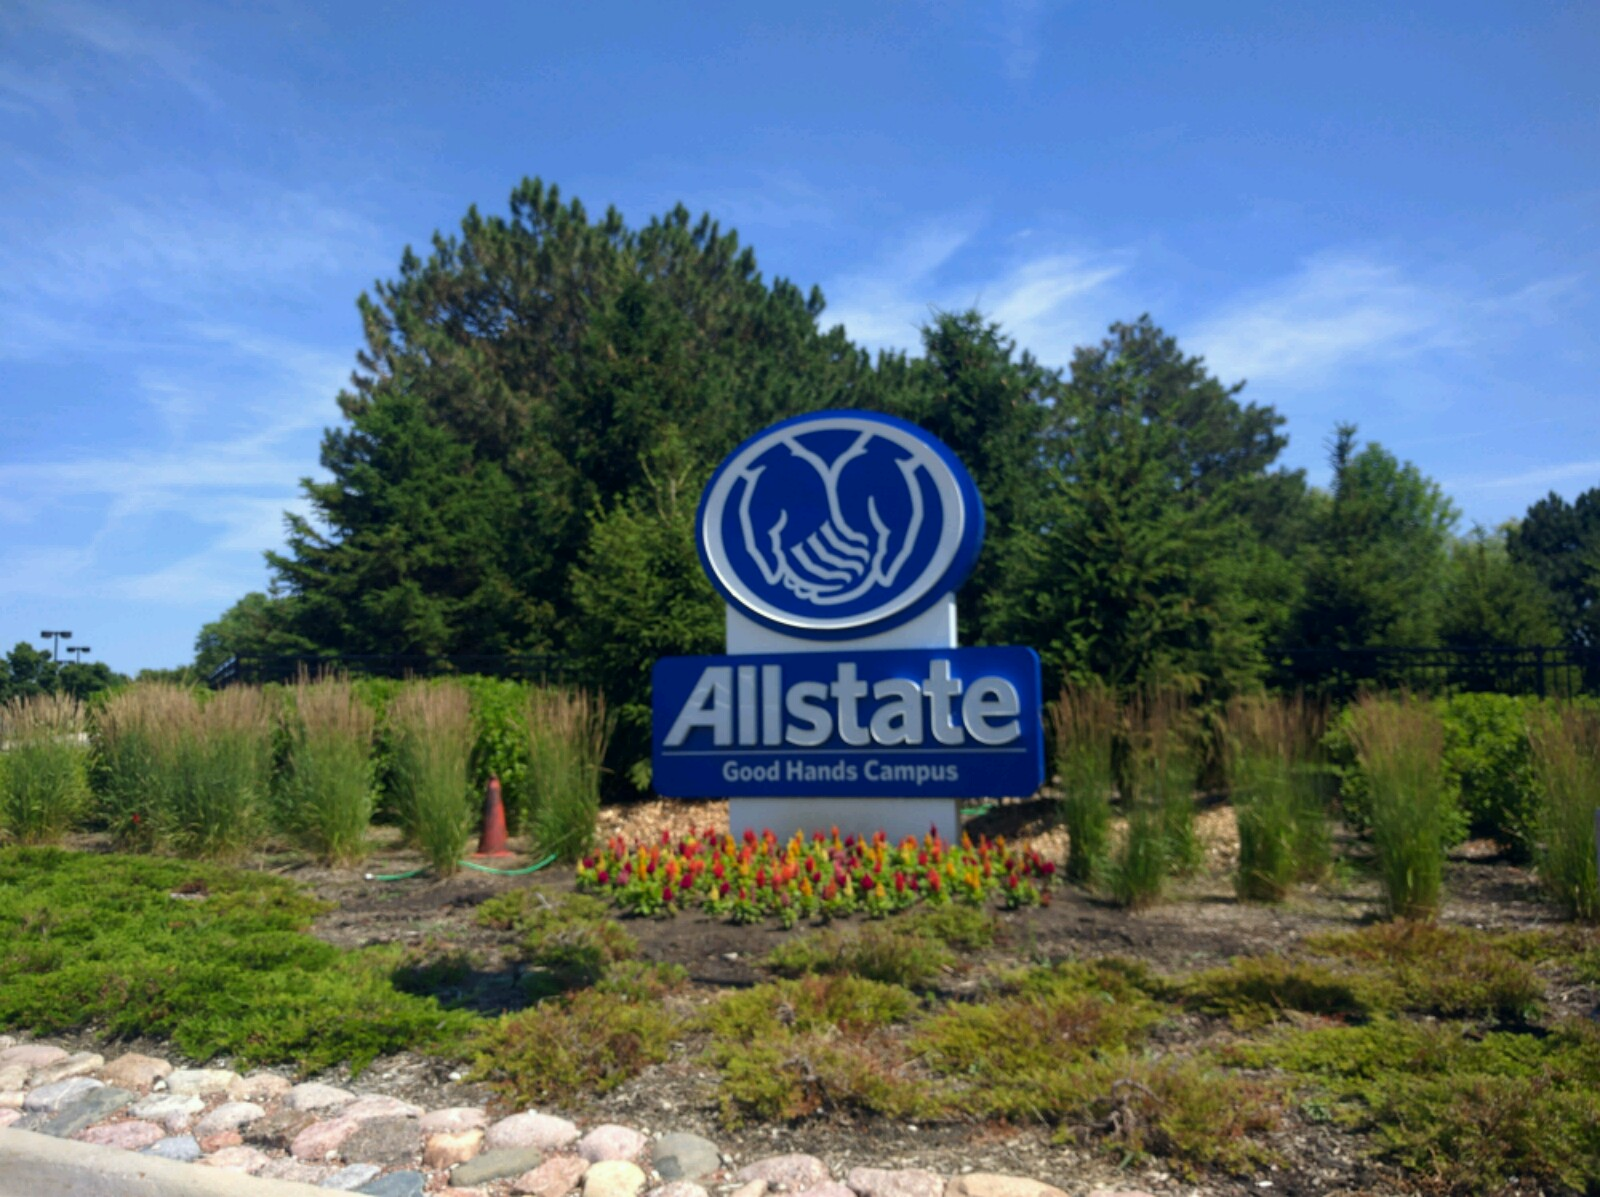 Entrance to Allstate's corporate headquarters in Northbrook, Illinois.